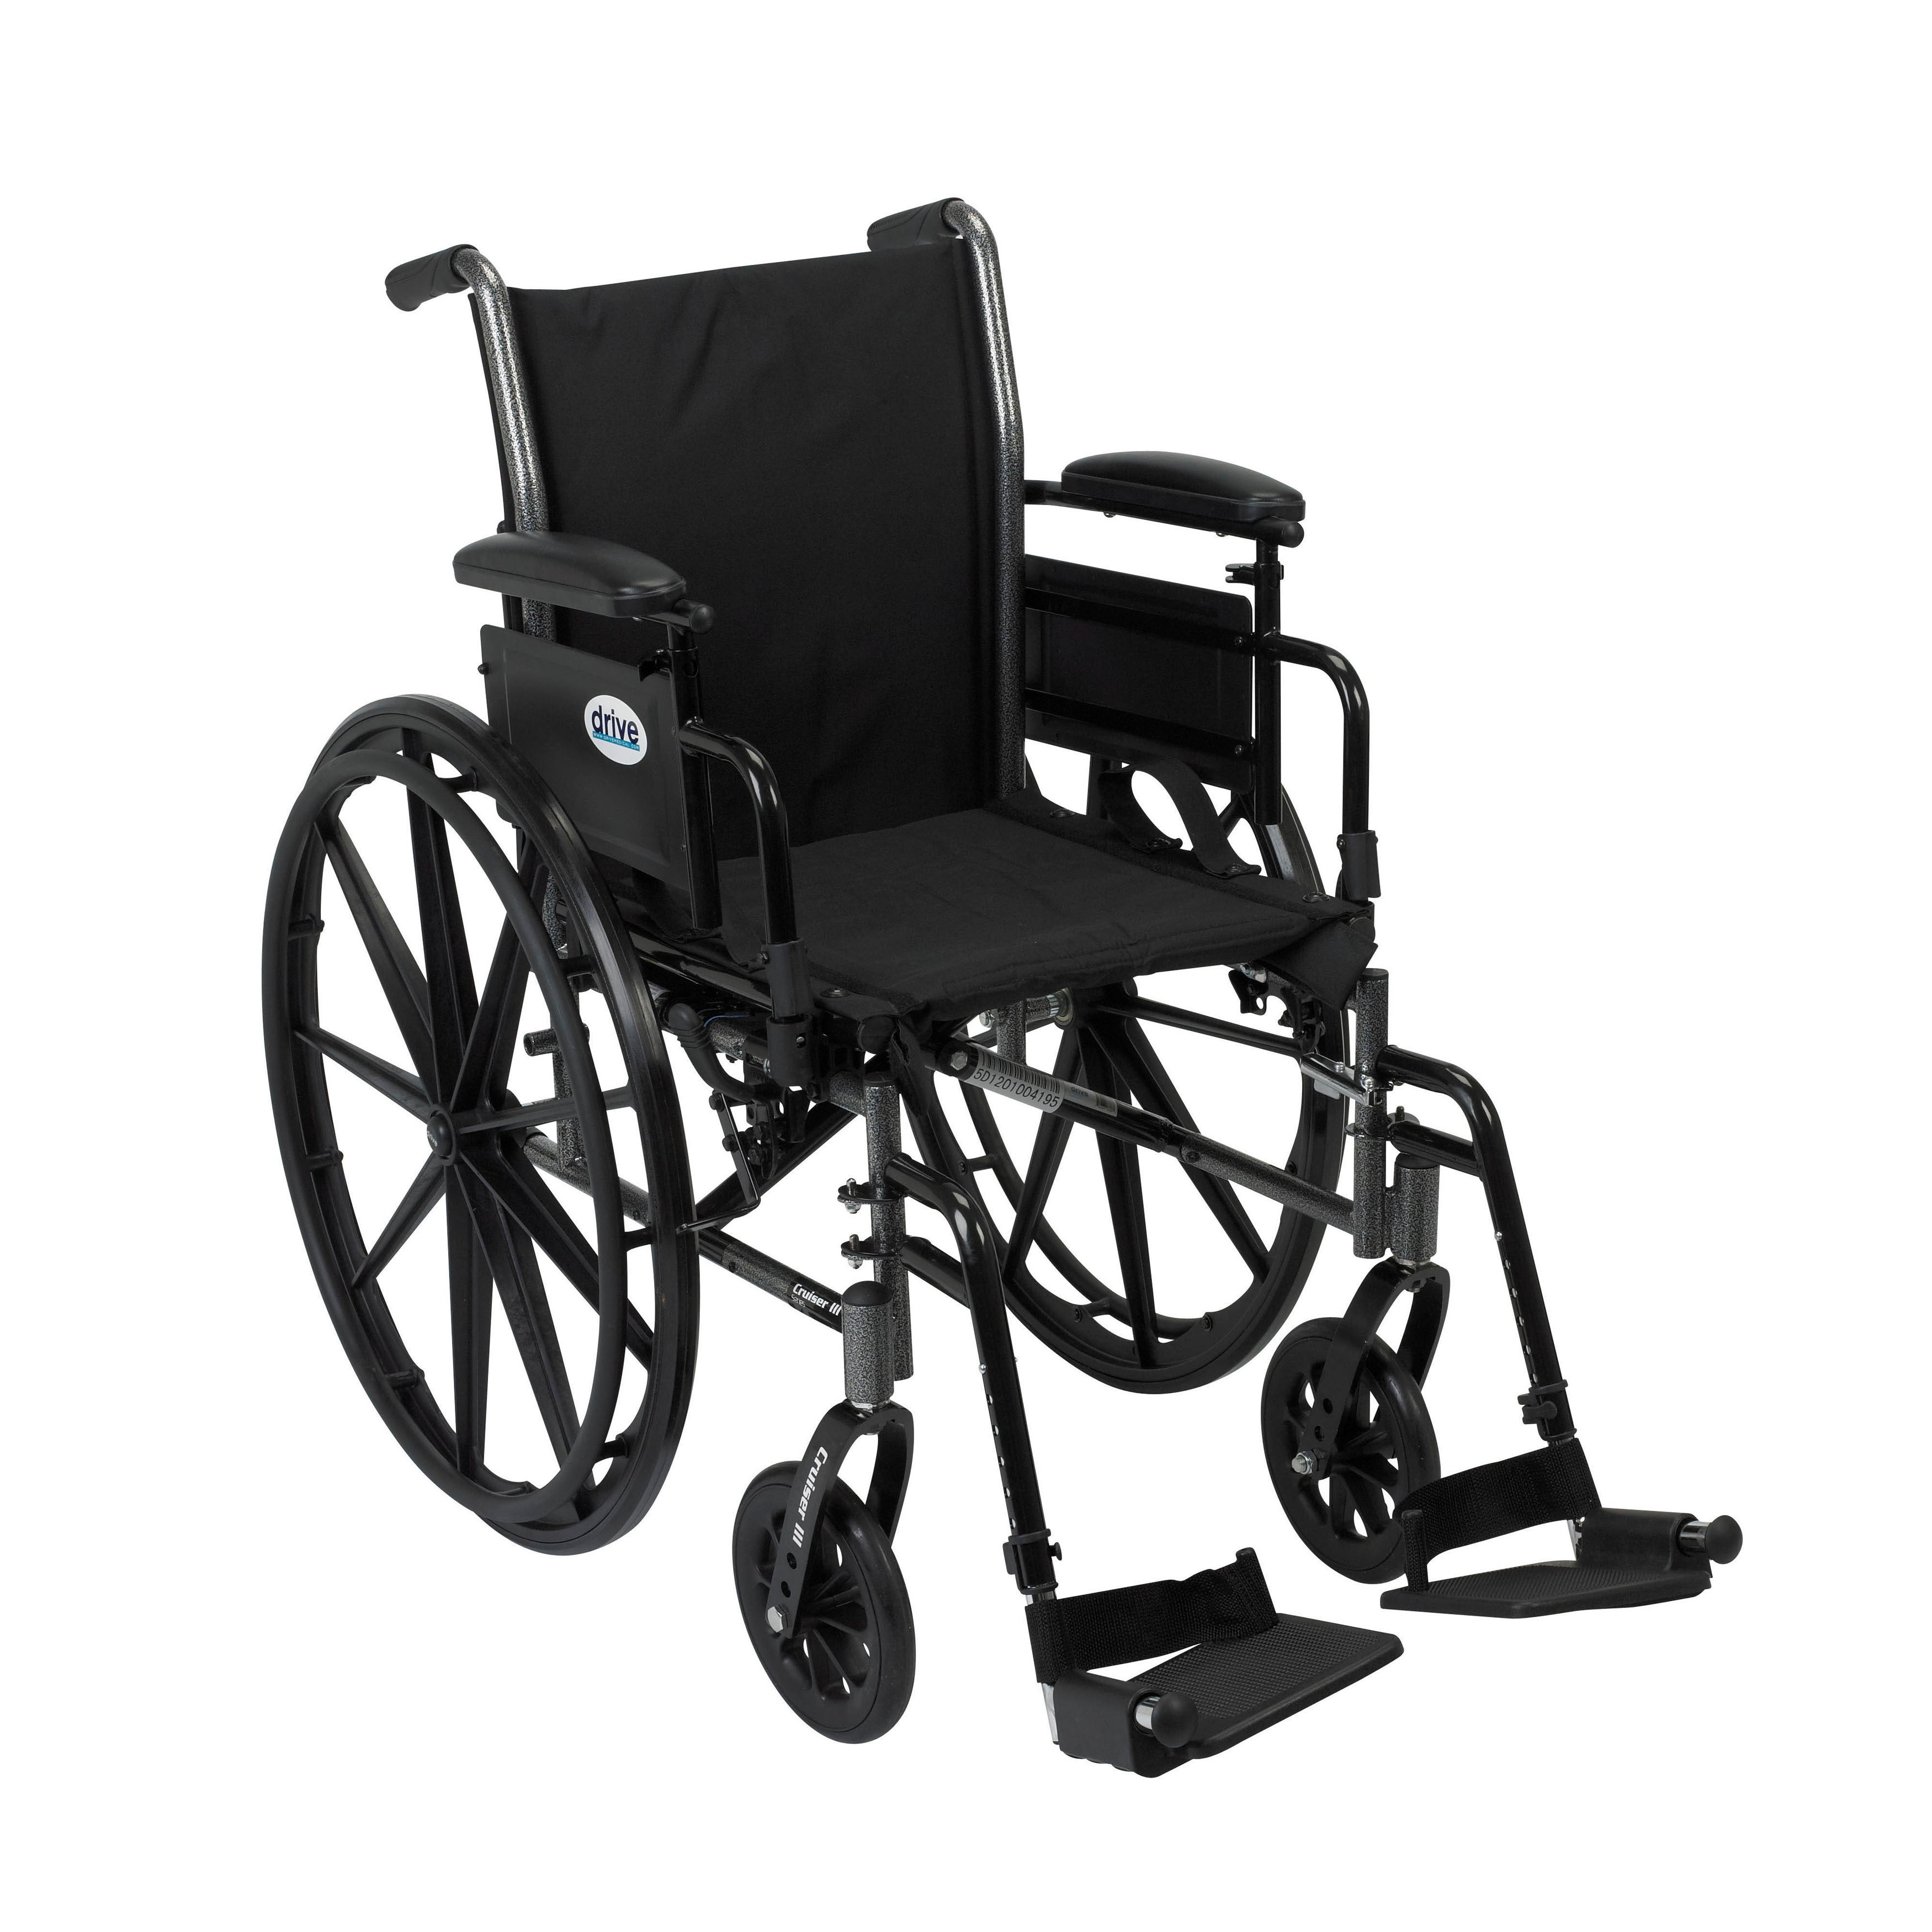 Cruiser III Lightweight Wheelchair with Various Flip Back Arm Styles and Front Rigging Options